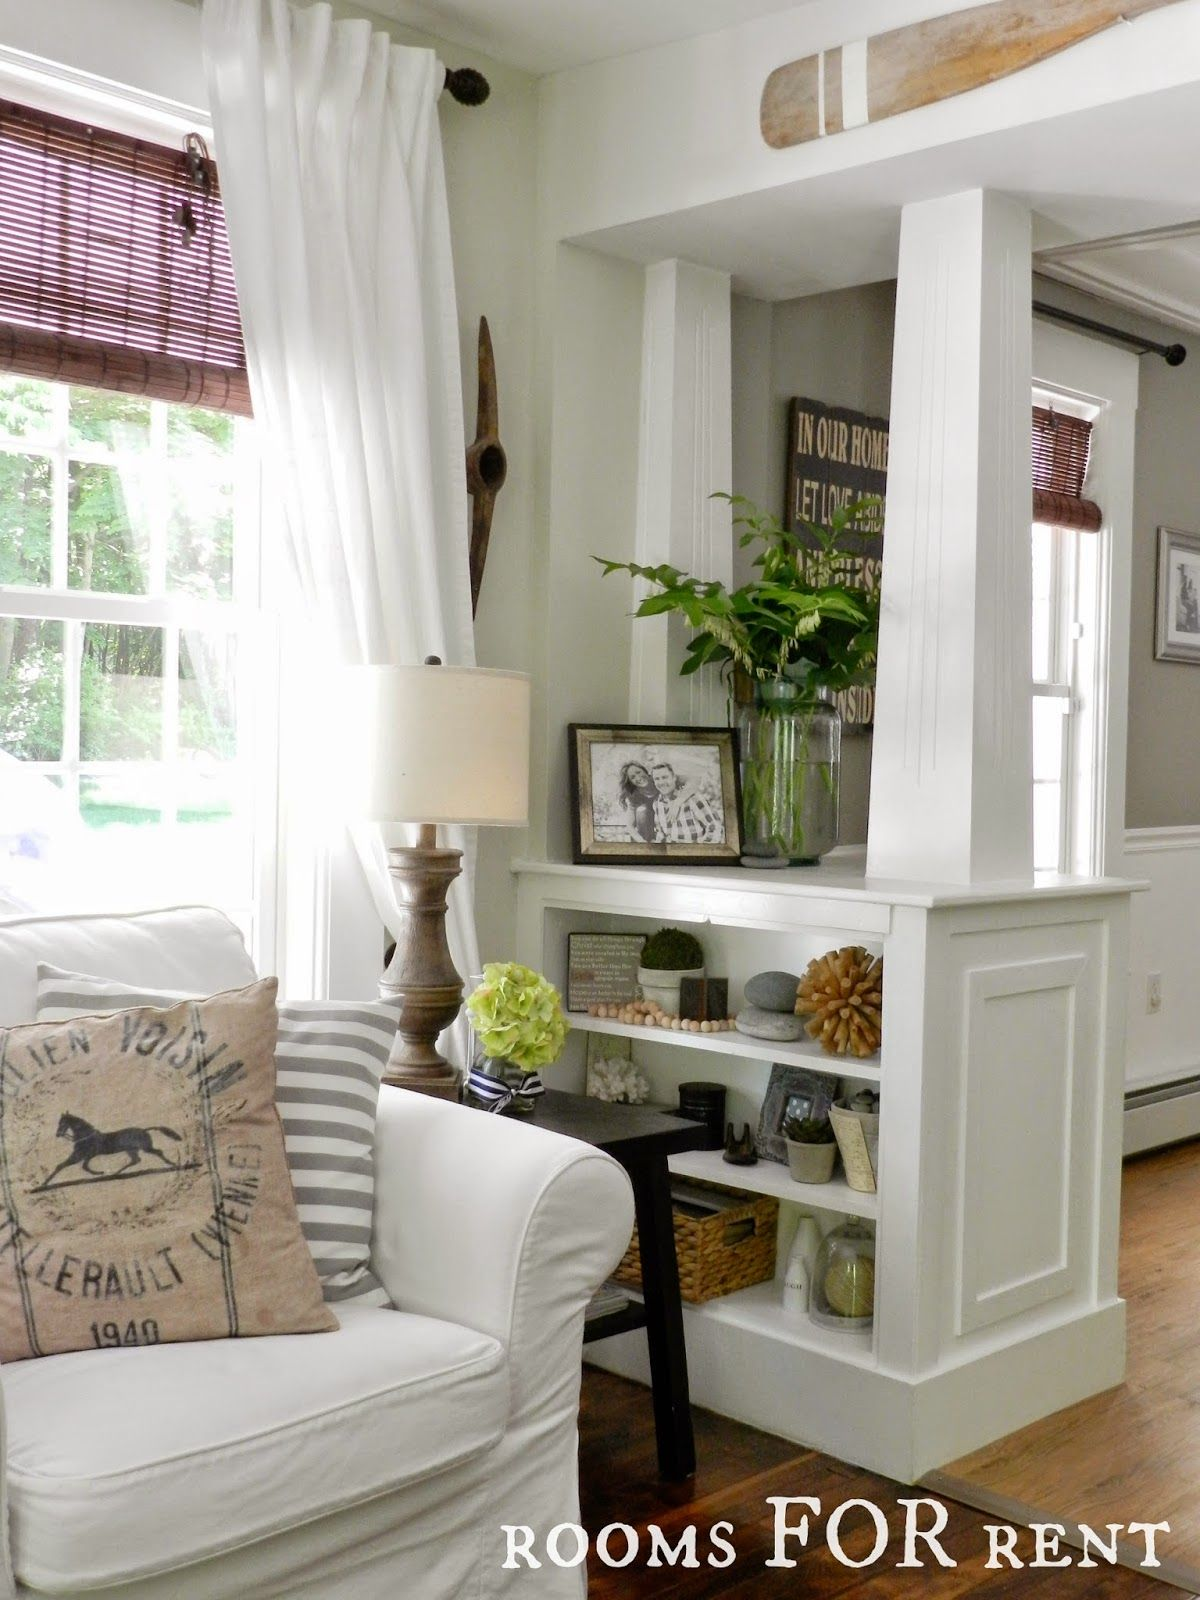 Shelves White Walls And Entry Ways: White Columns With Built In Shelves . . . Great To Divide Up A Room And Give The Feel Of An